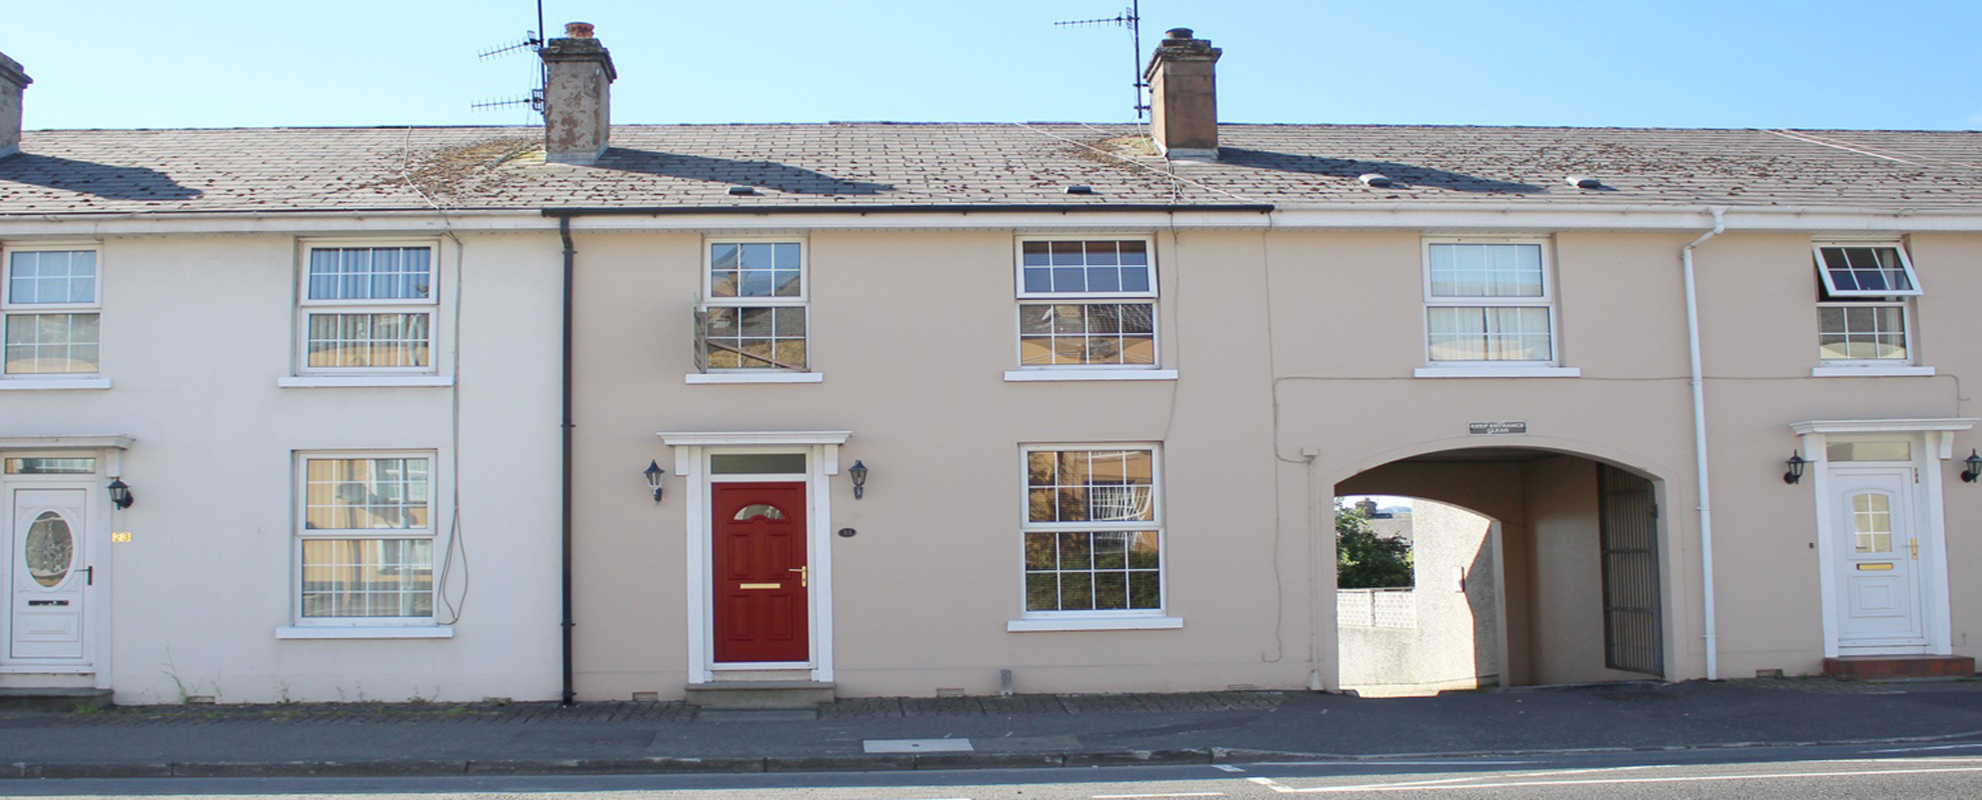 21 Dromore Street, Banbridge, BT32 4DL